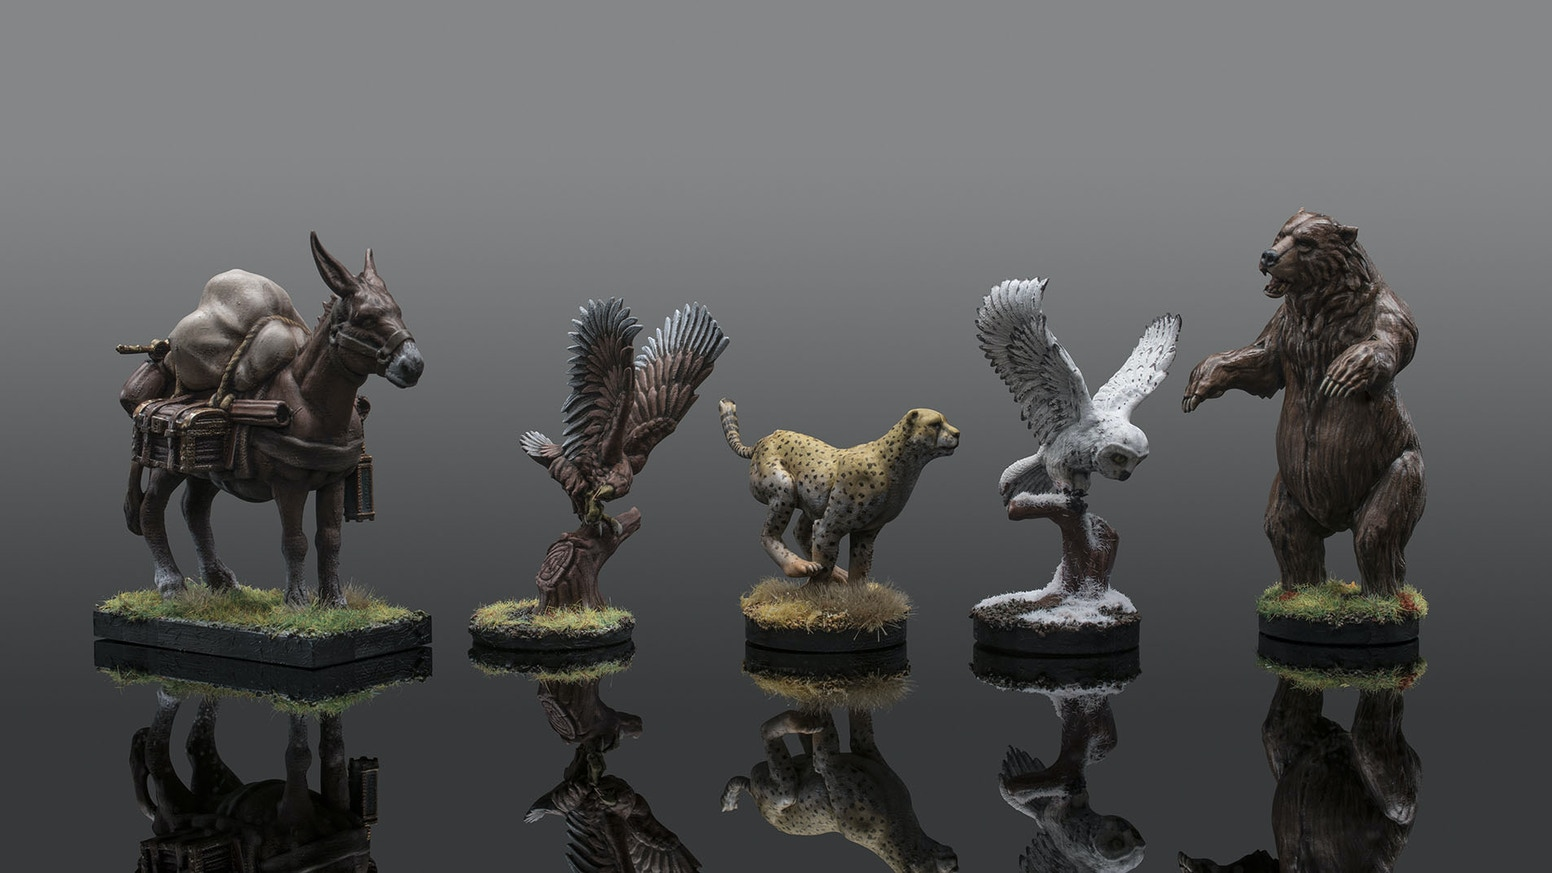 Animal Companion Miniatures for game play in both Dungeons & Dragons 5e and Pathfinder.